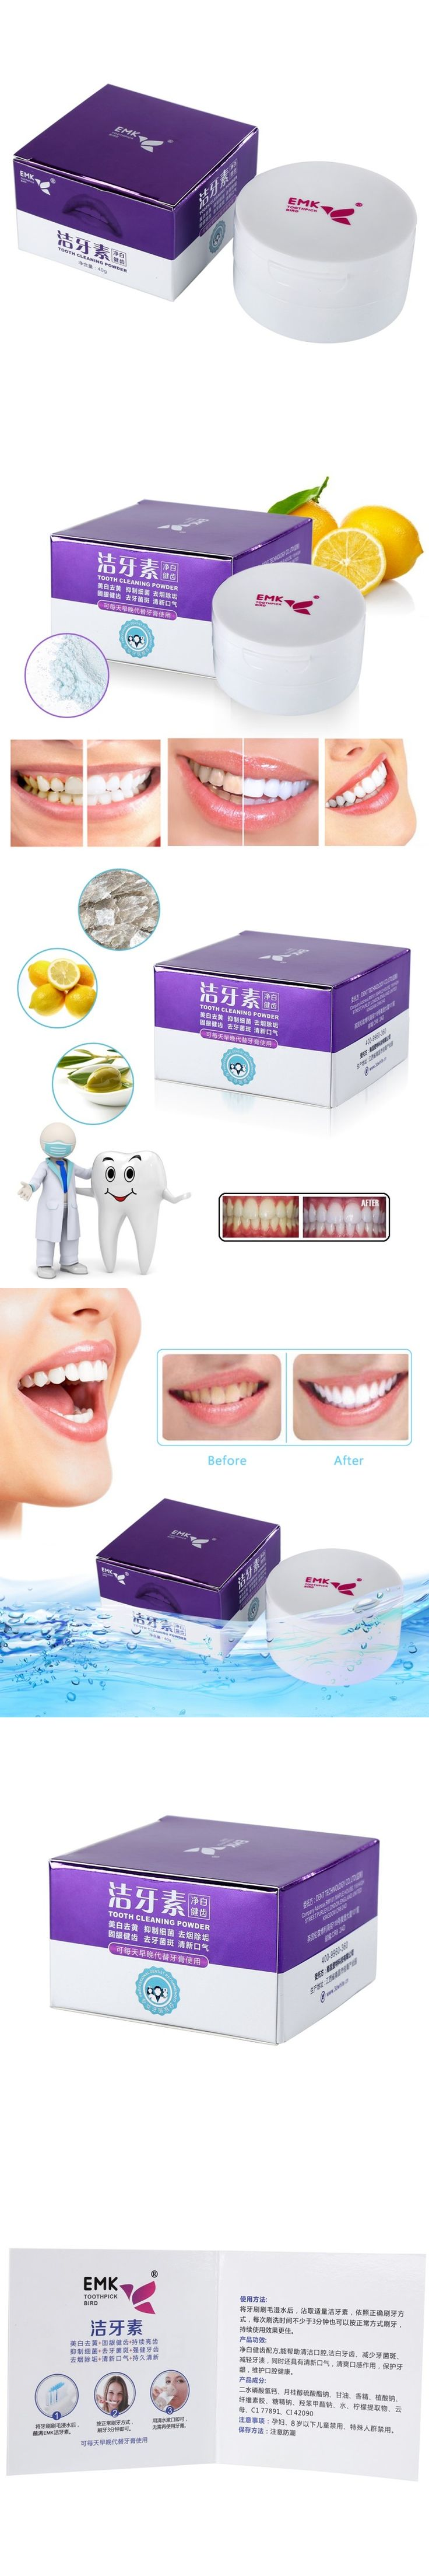 2017 Powder Teeth Whitening Scaling Oral Hygiene Cleaning Teeth Plaque Tartar Removal Coffee Stains Tooth White Powders